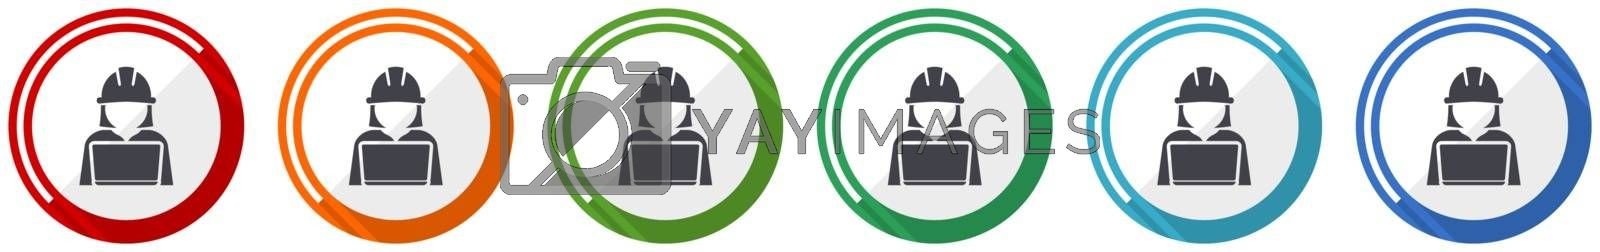 Engineer with laptop icon set, worker, manager flat design vector illustration in 6 colors options for webdesign and mobile applications